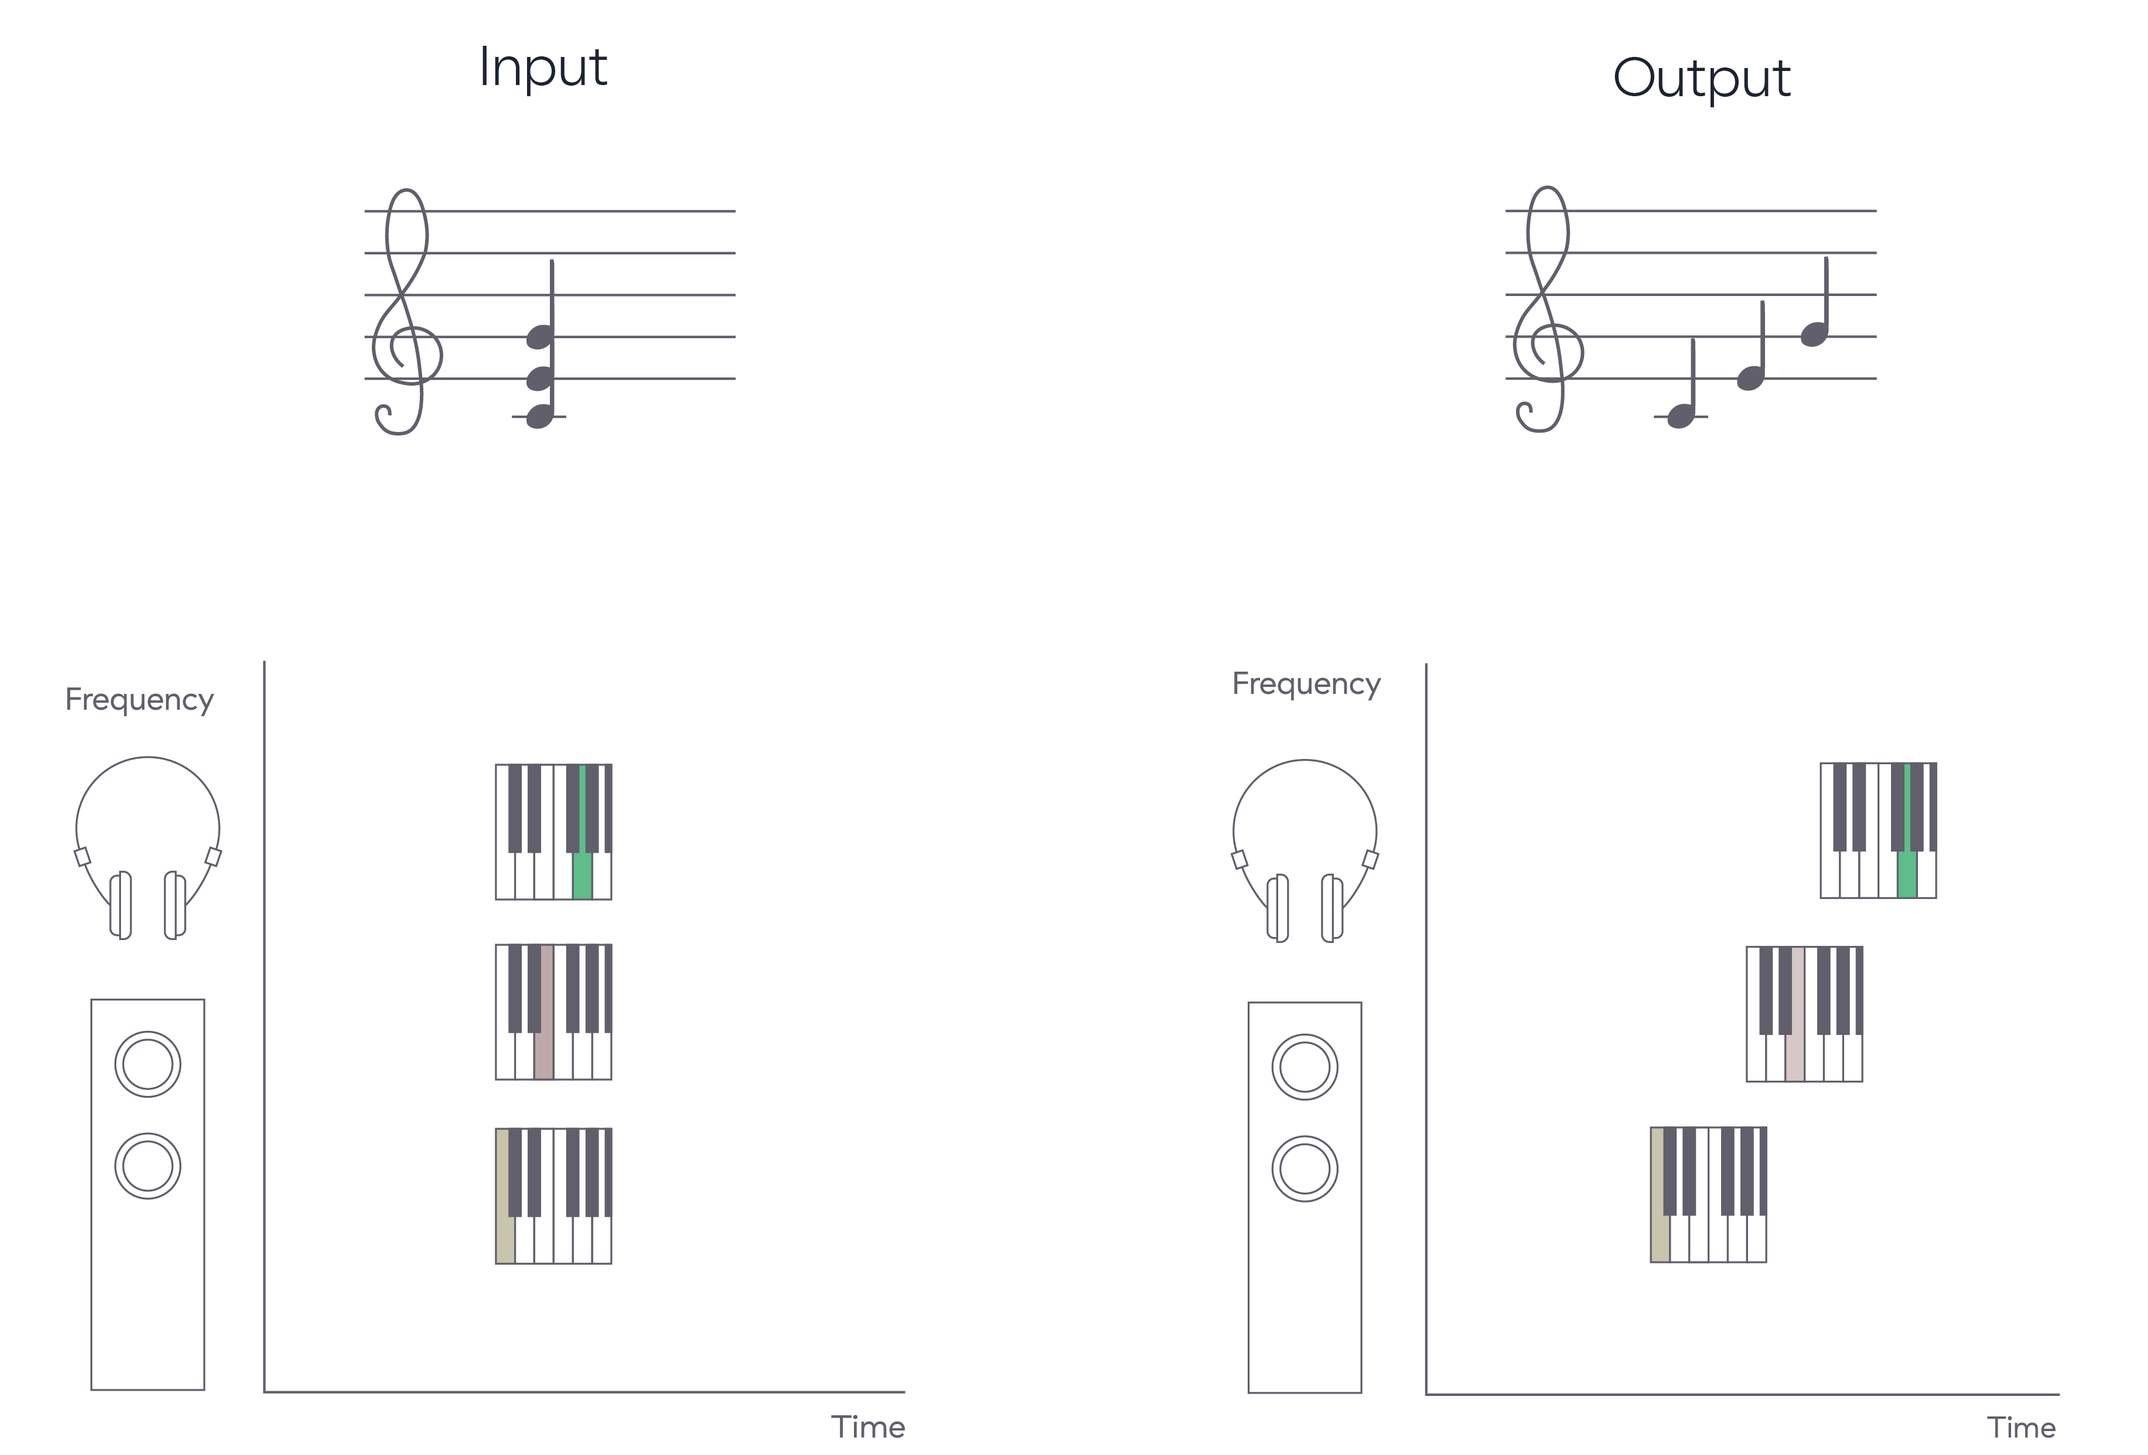 Due to the frequency dependent, time smearing nature of audio systems, musical notes intended to be played back simultaneously become blurred and spread out in time.